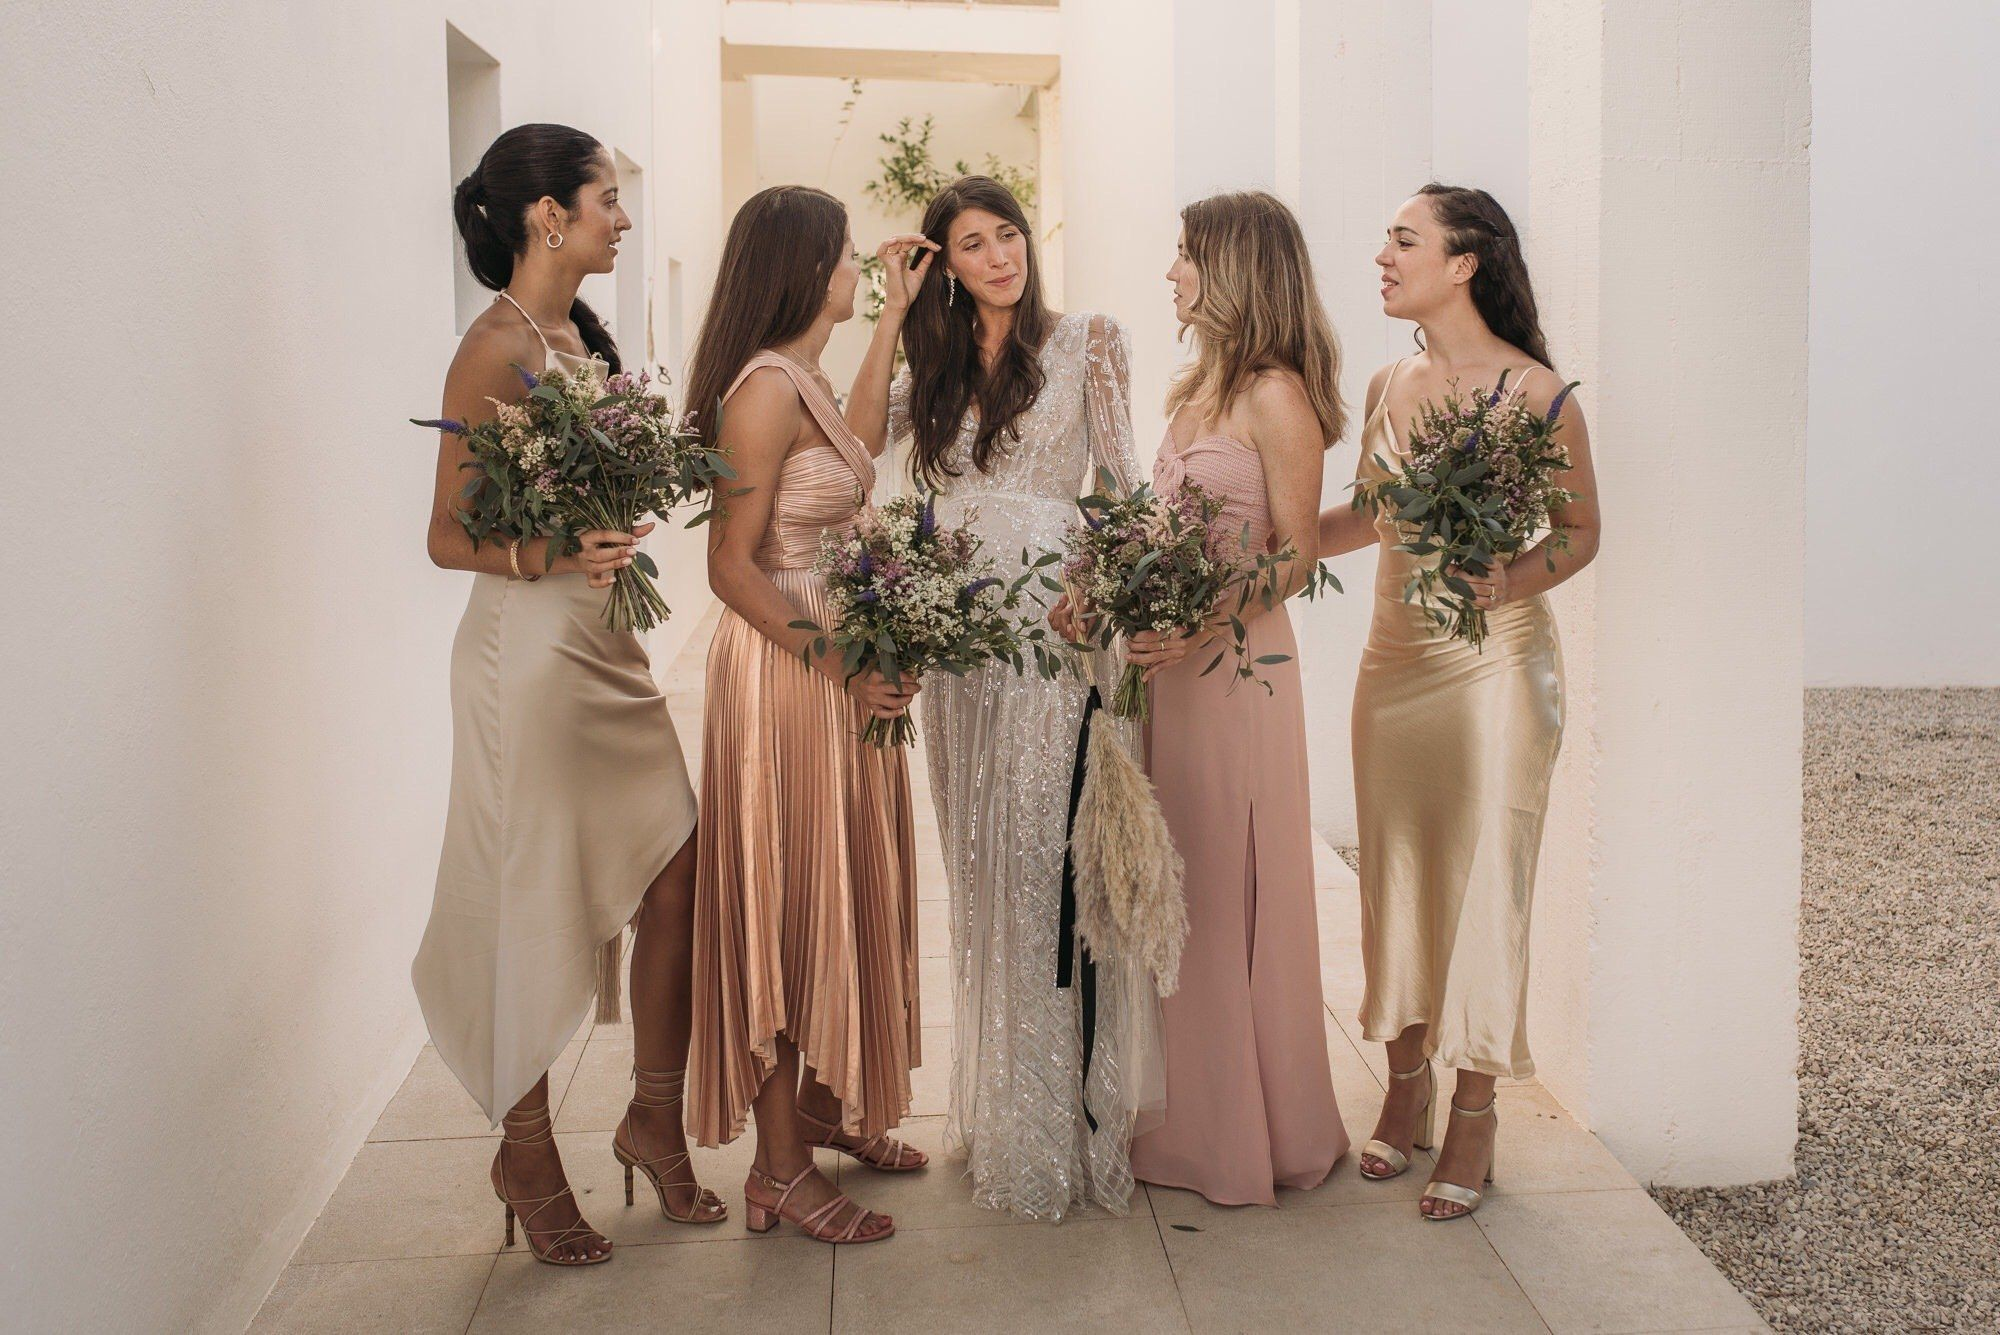 Fall Head Over Heels For These 20 Pairs Of Perfect Wedding Guest